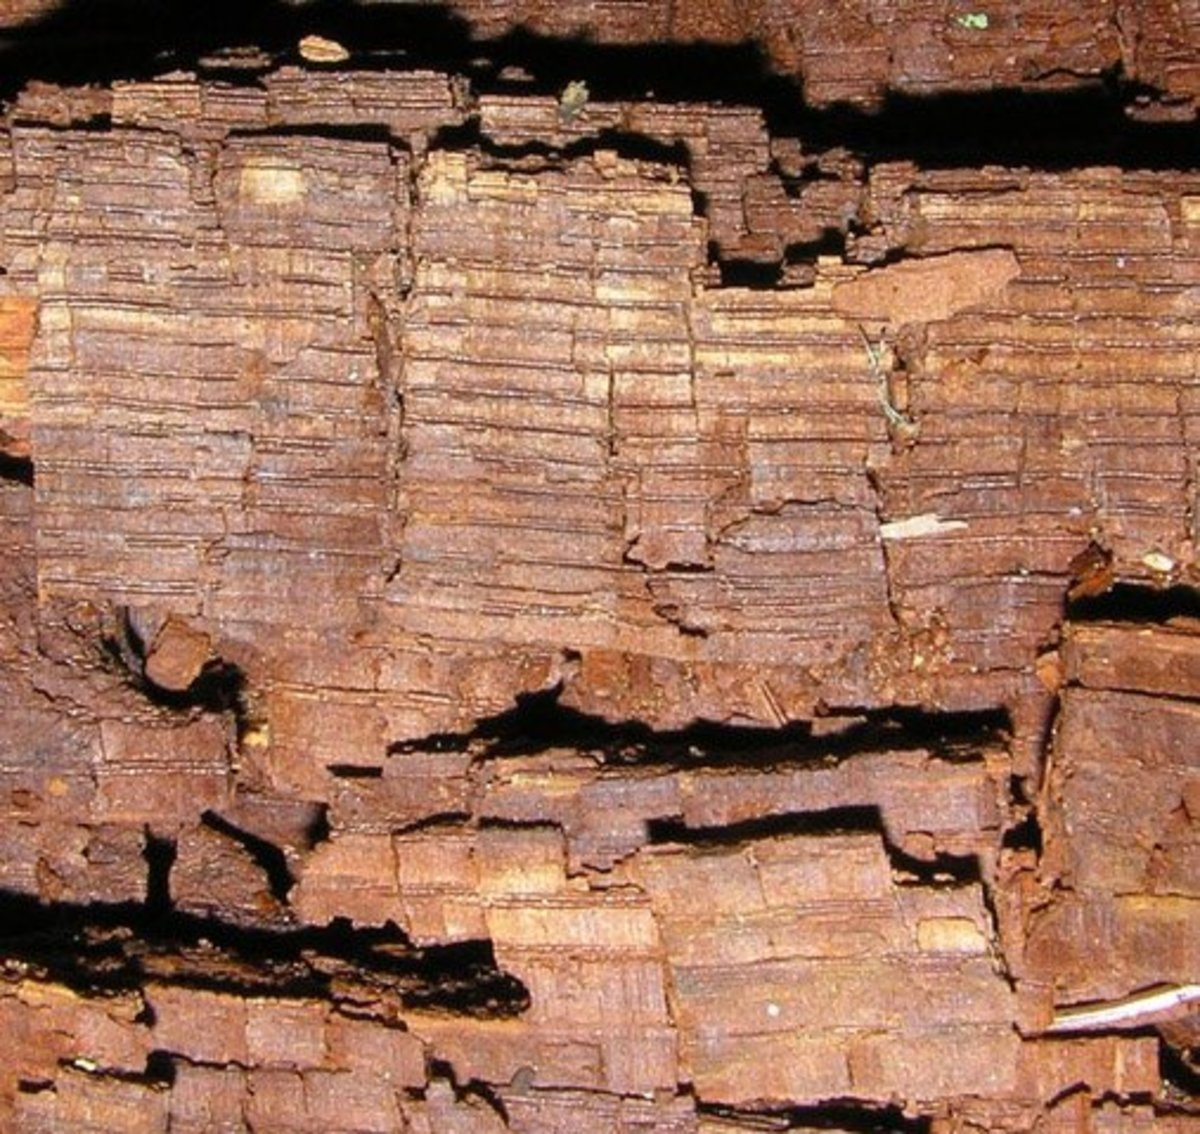 The fungus-decay on this piece of decomposing wood is referred to as brown rot.